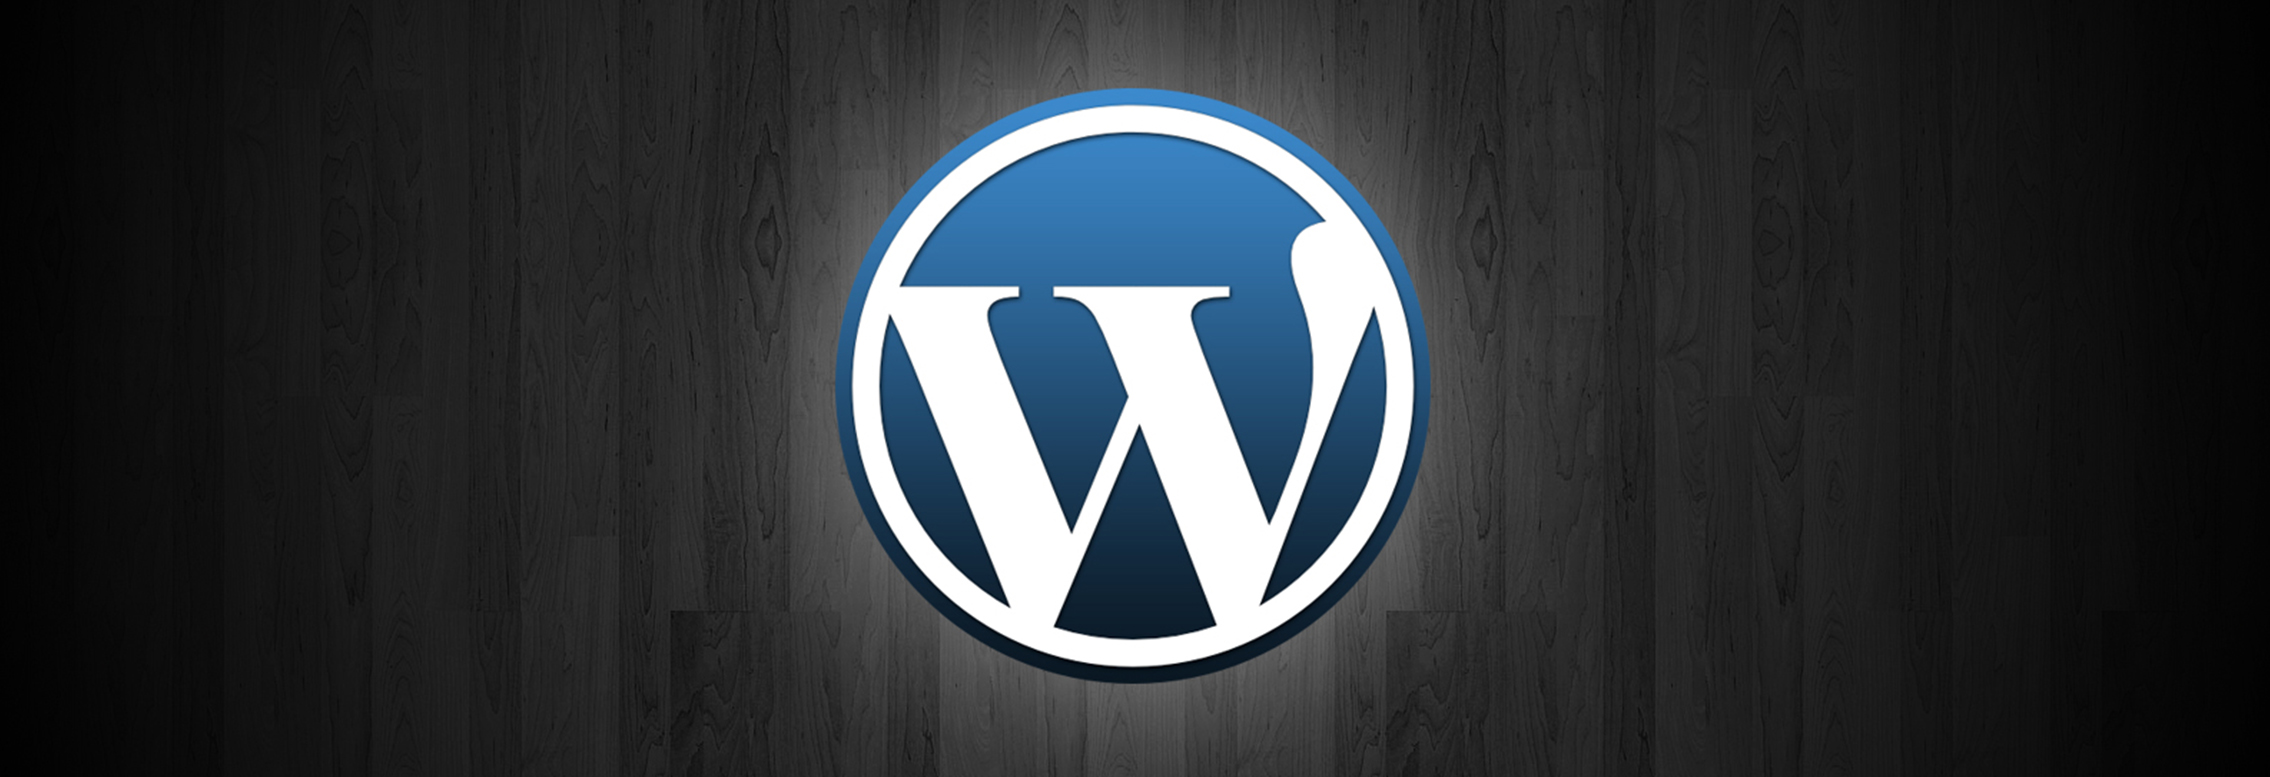 Curso Completo de Wordpress